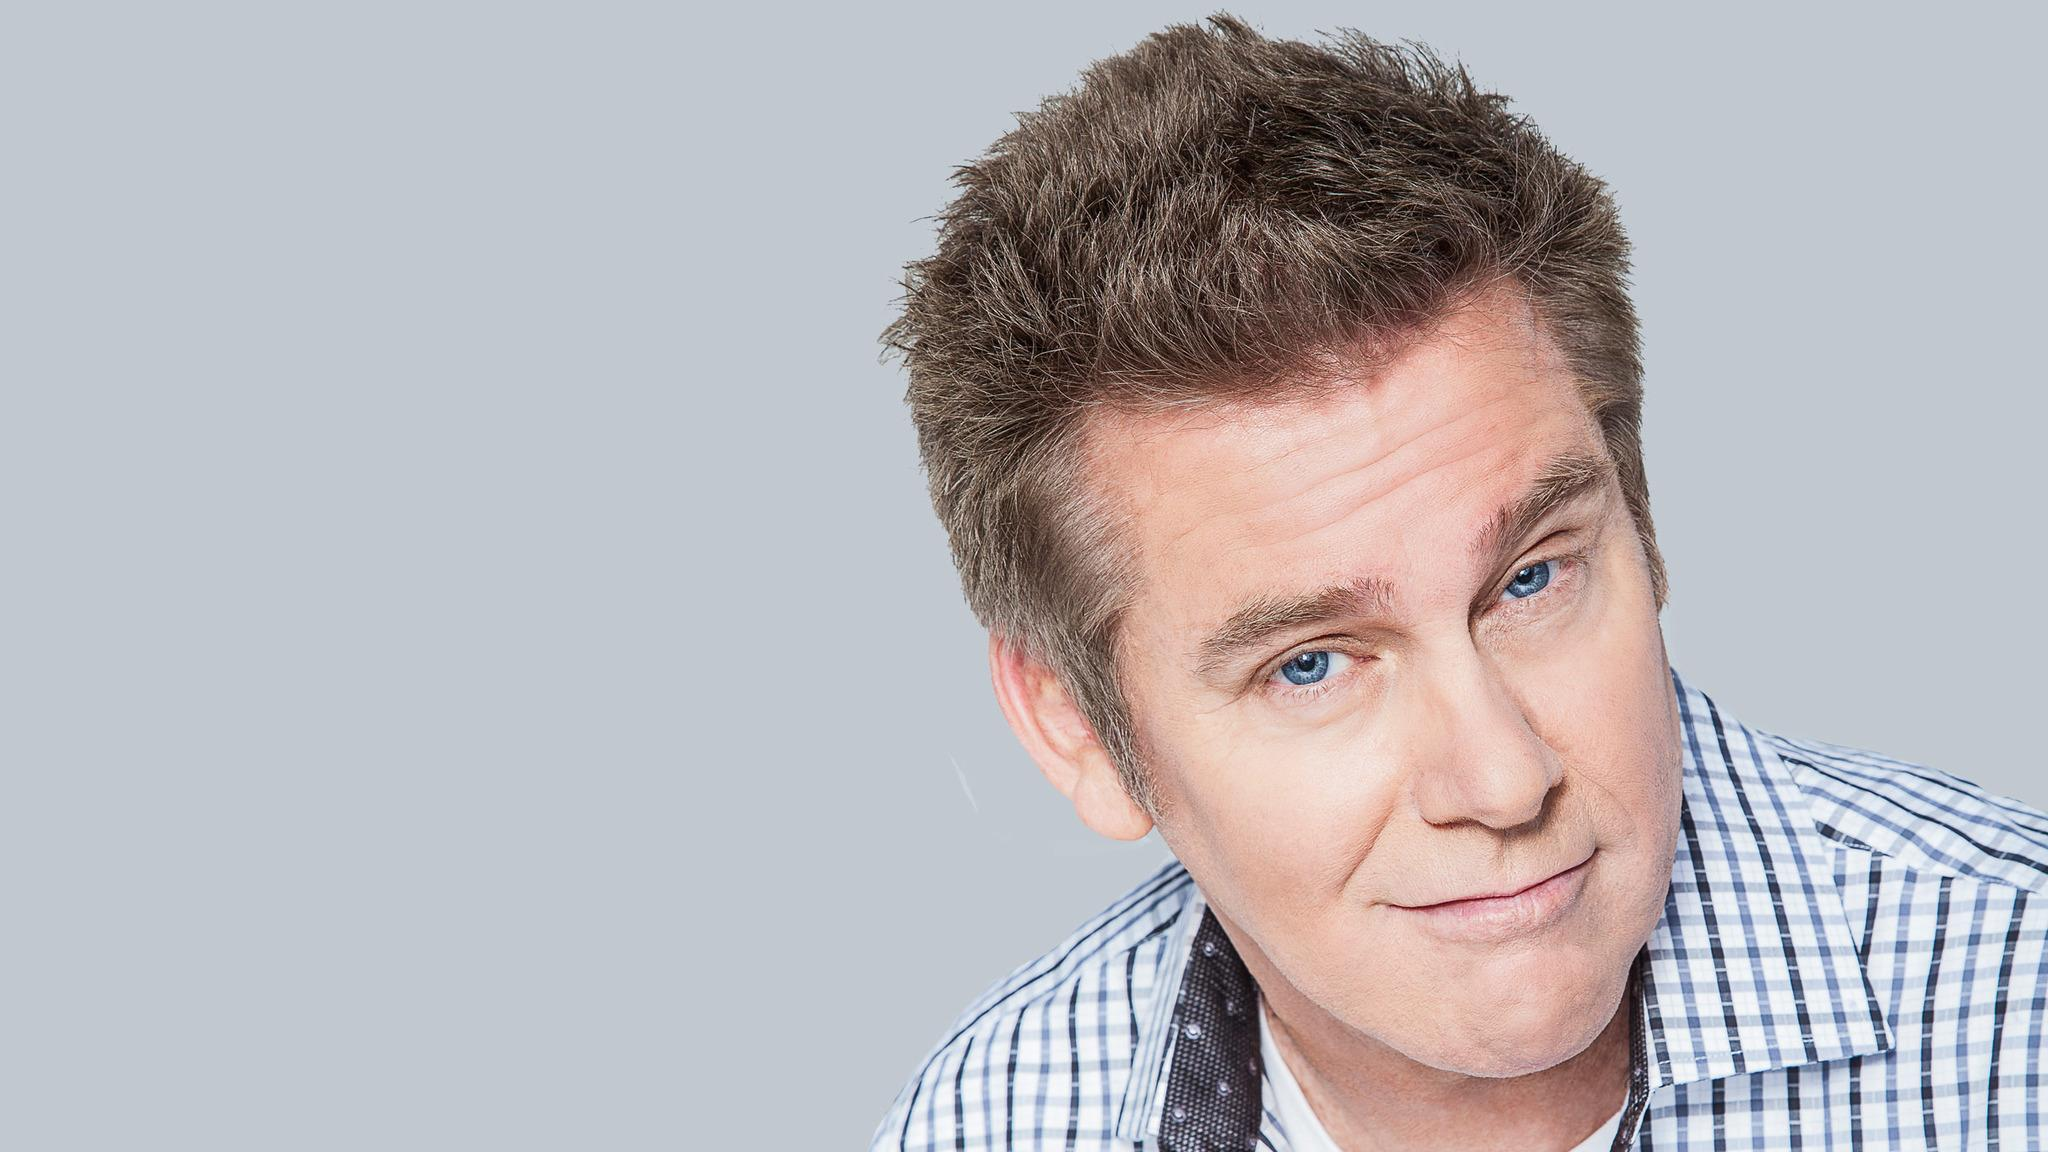 Brian Regan at THE INB PERFORMING ARTS CENTER - Spokane , WA 99201